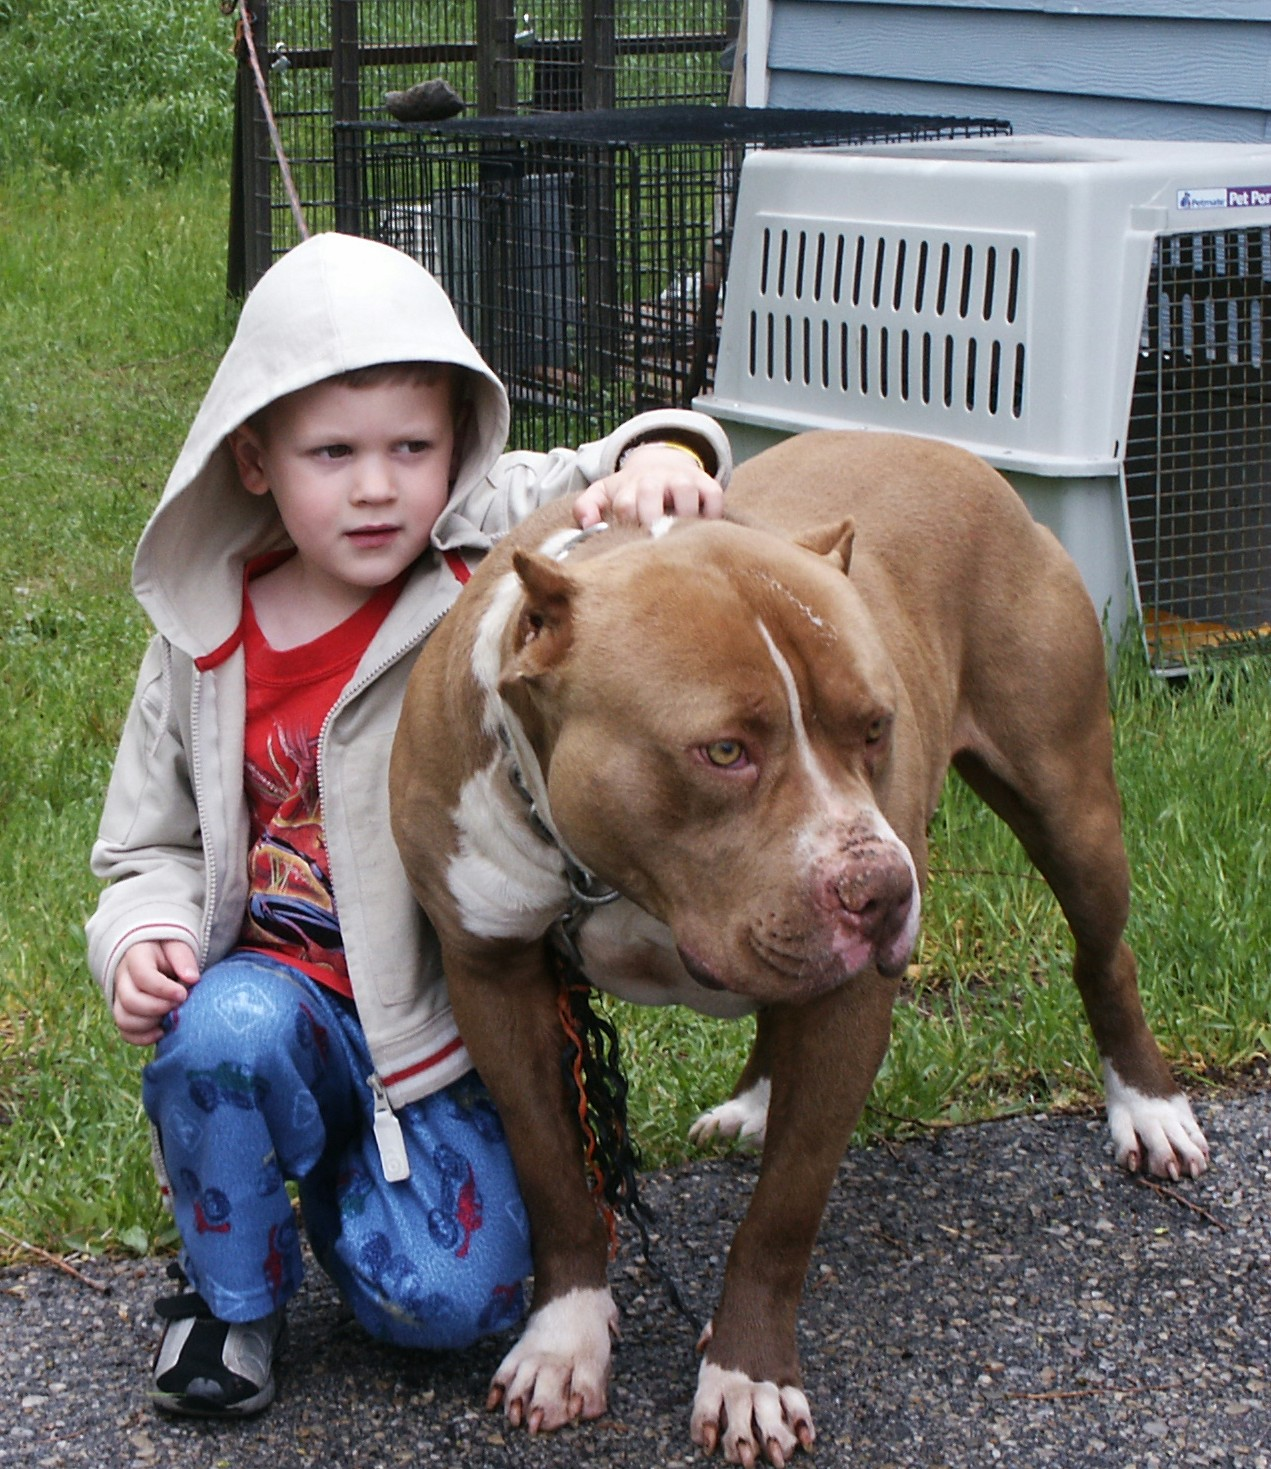 Pitbull dogs on steroids - photo#21